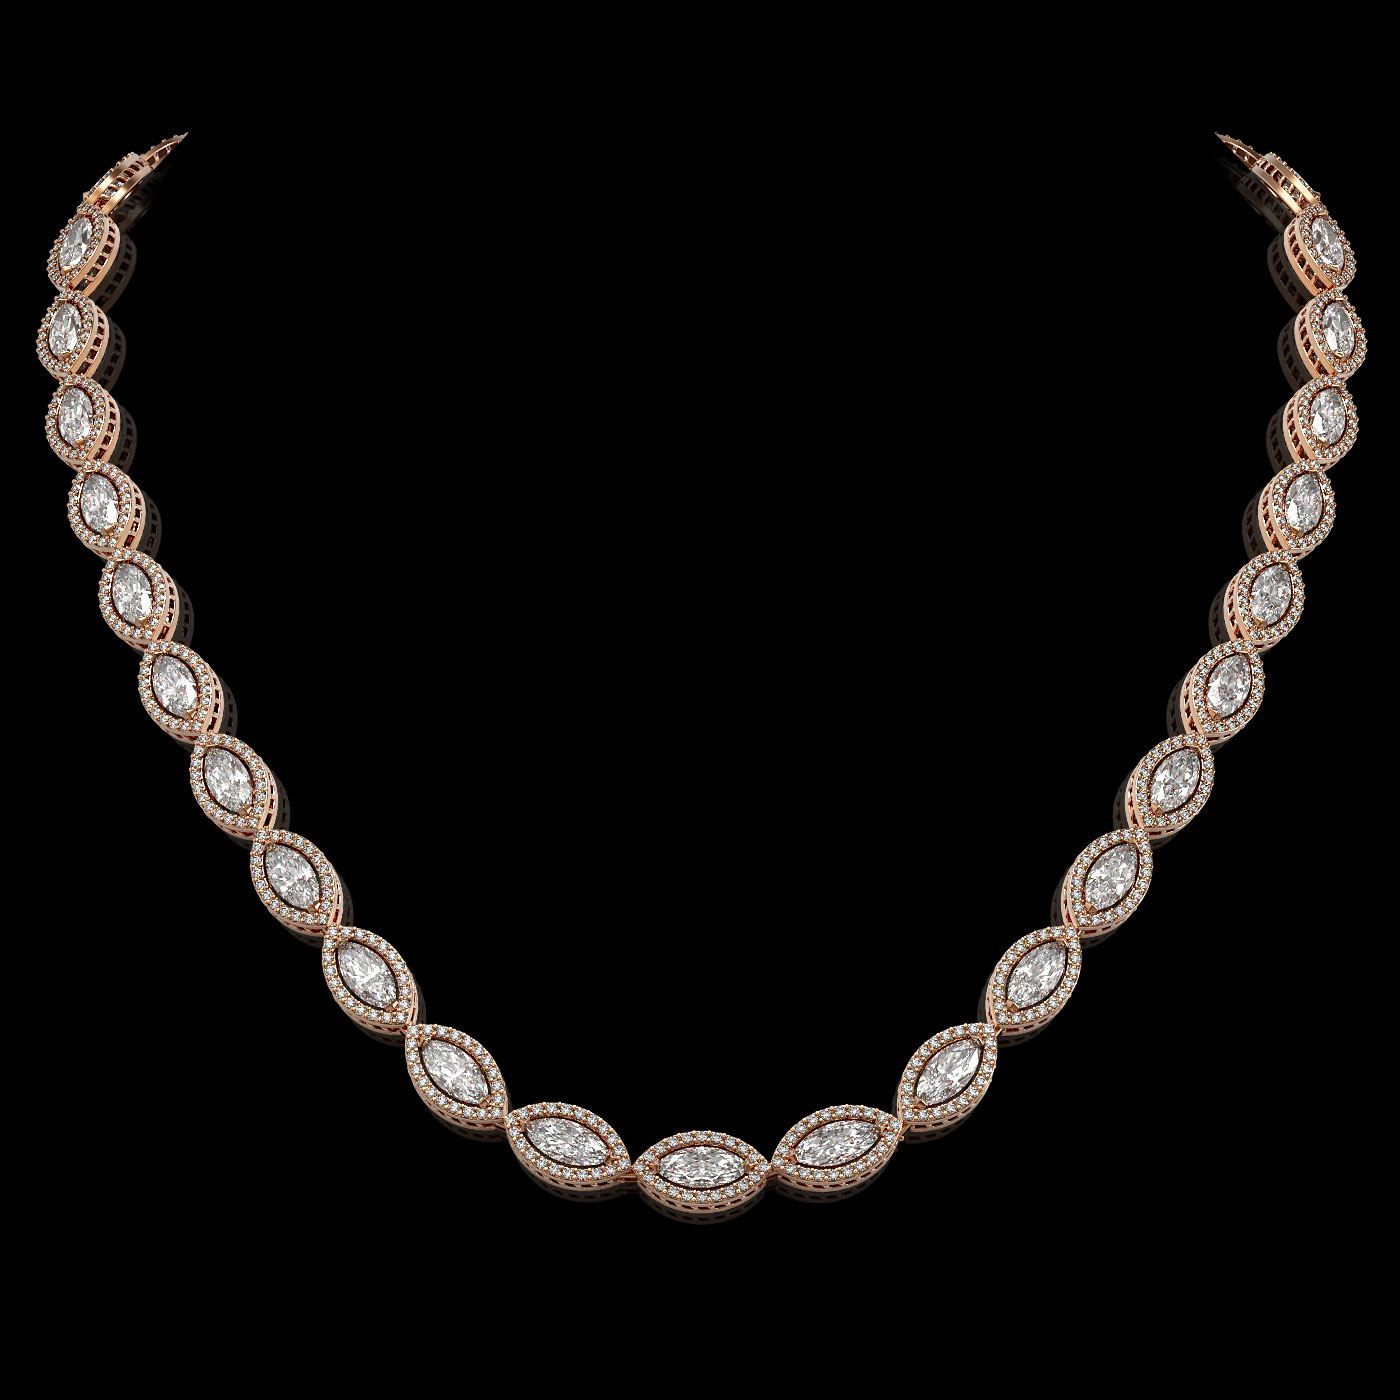 pagani marquise deborah false lariat tennis crop gold necklace upscale the subsampling product shop in white scale diamond